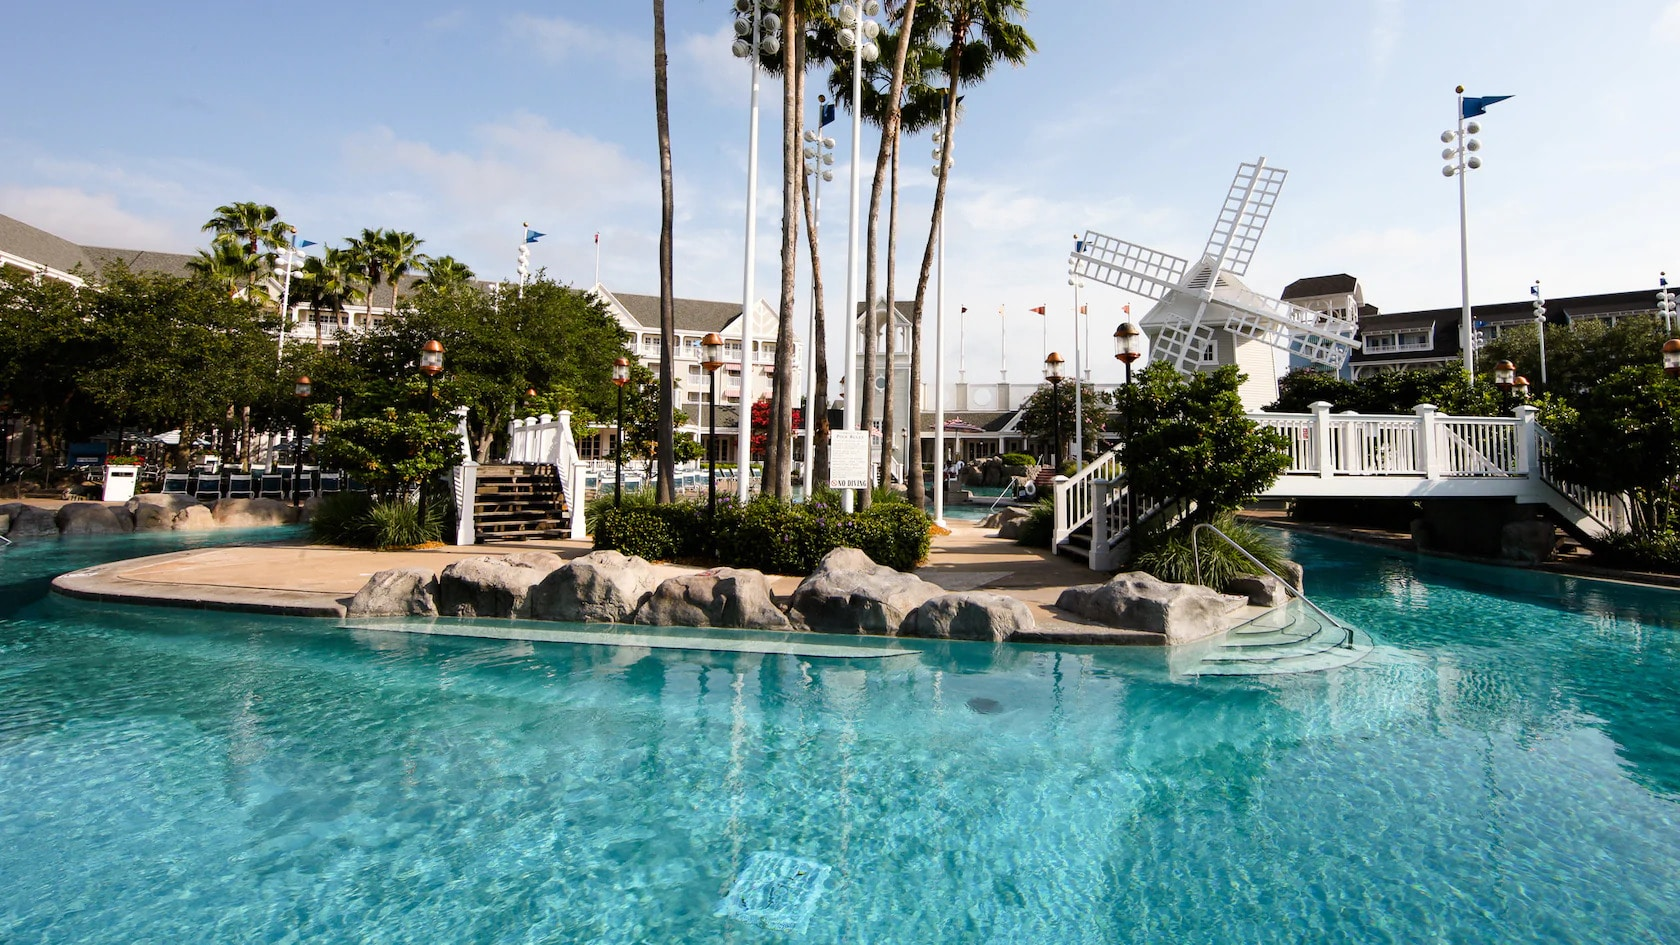 Disney World Hotel Reviews – All Property Hotels Ranked & Reviewed